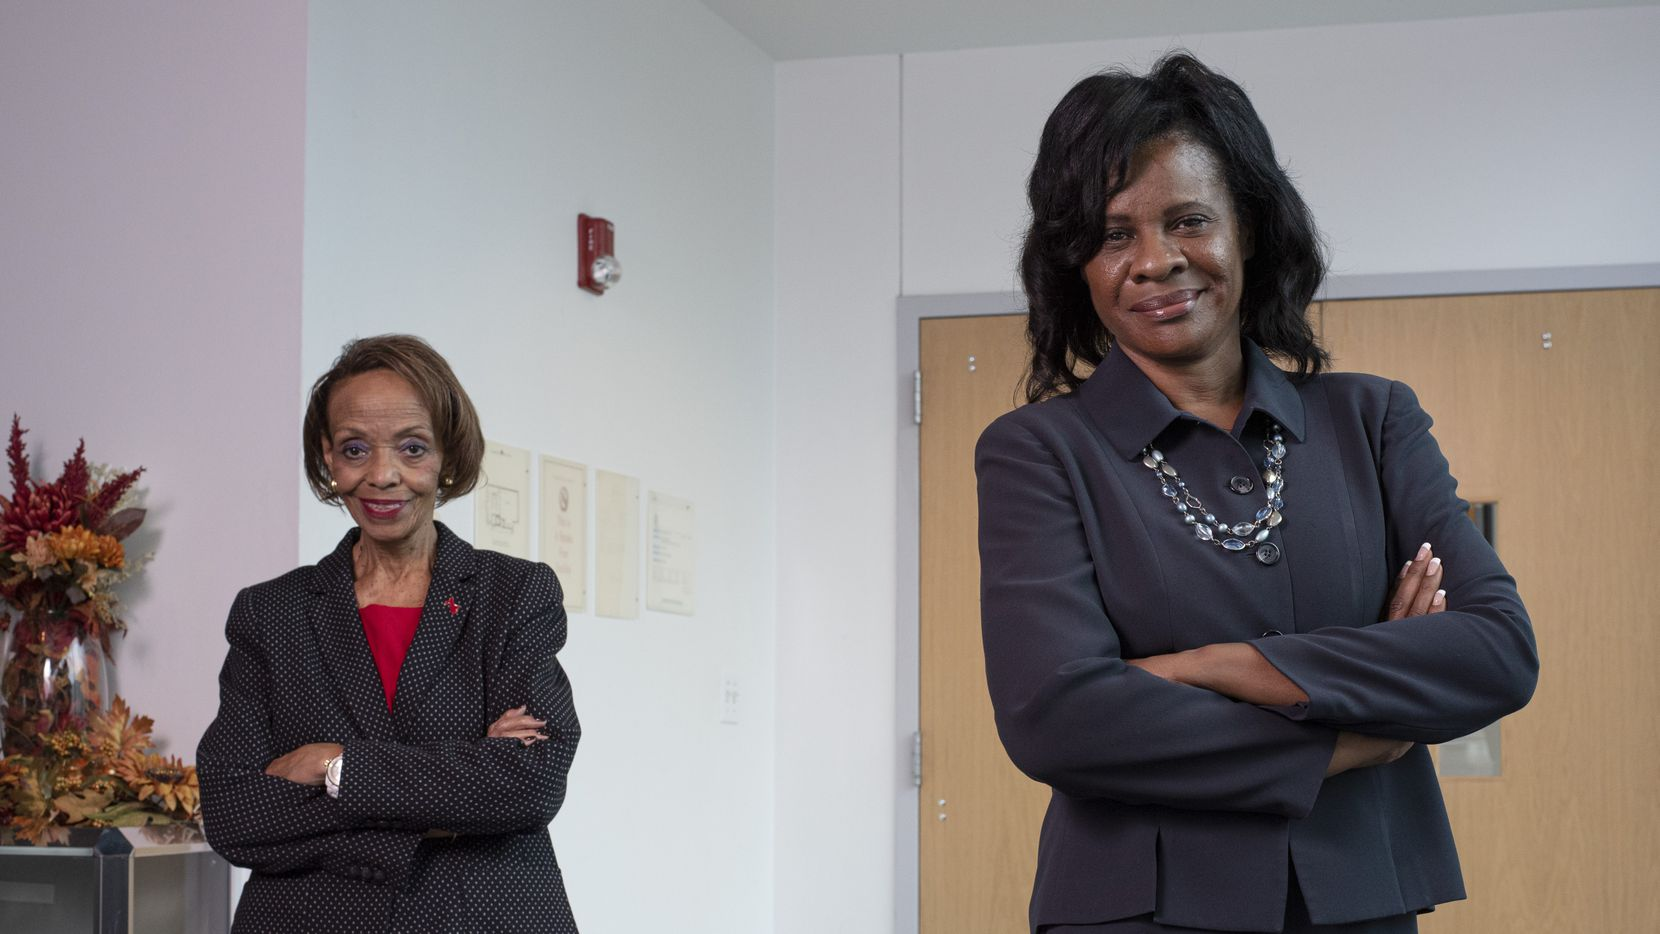 Head Start of Greater Dallas Chief Executive Officer Kathryn McCartney, left, and board President Laura Cobb Hayes, right, at Head Start's headquarters in southern Dallas, Sept. 21, 2020. Hayes is the first Black female president elected to the board.